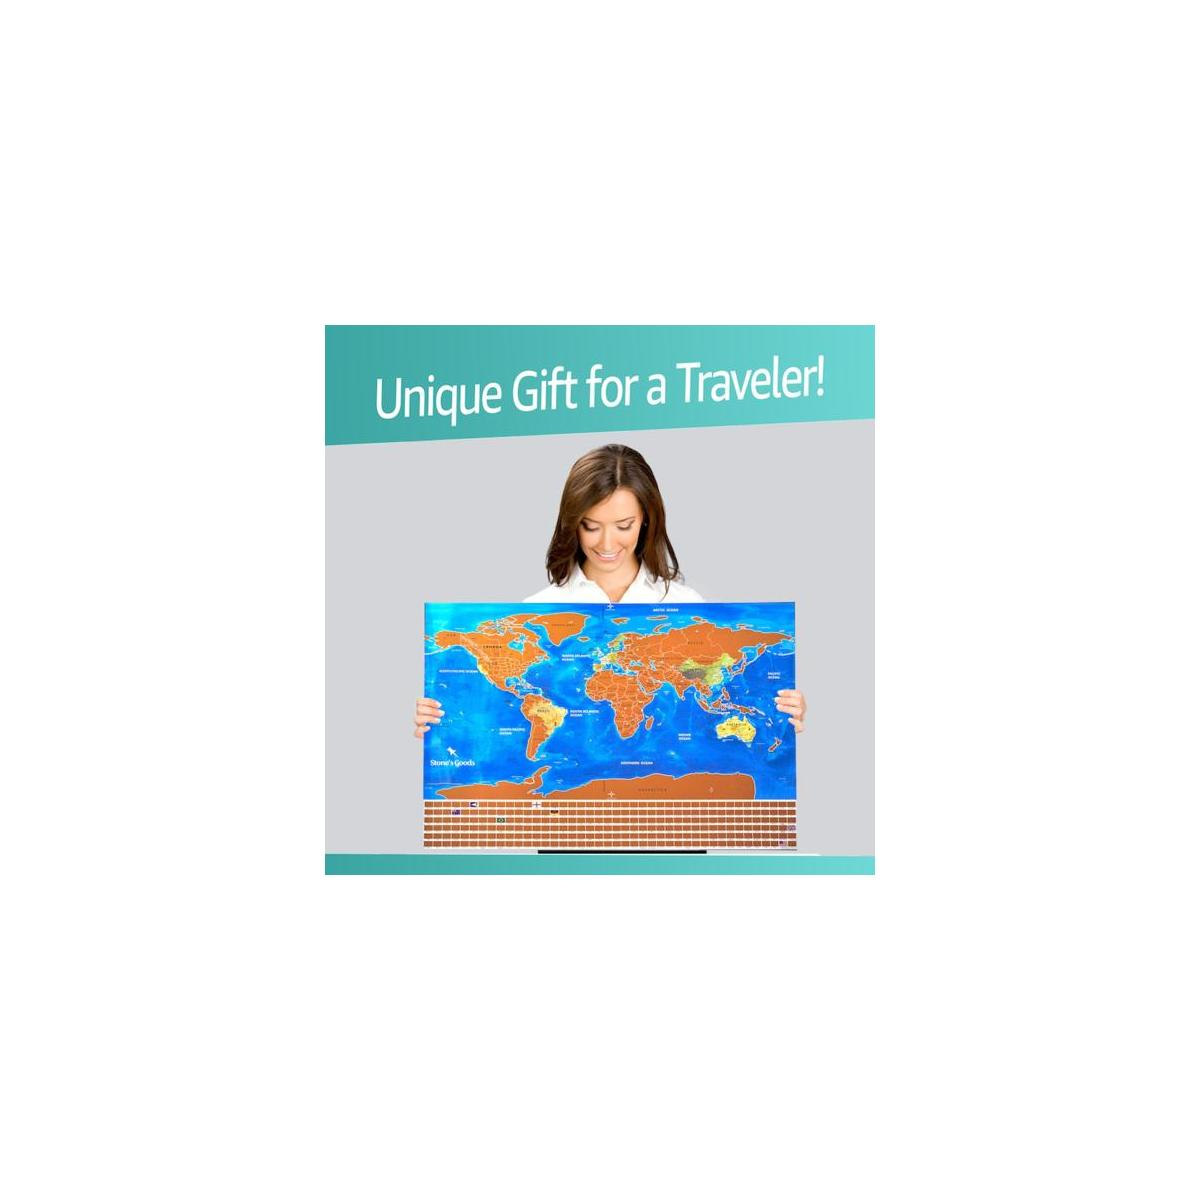 Scratch Off World Map - AMAZING GIFT FOR A TRAVELER!